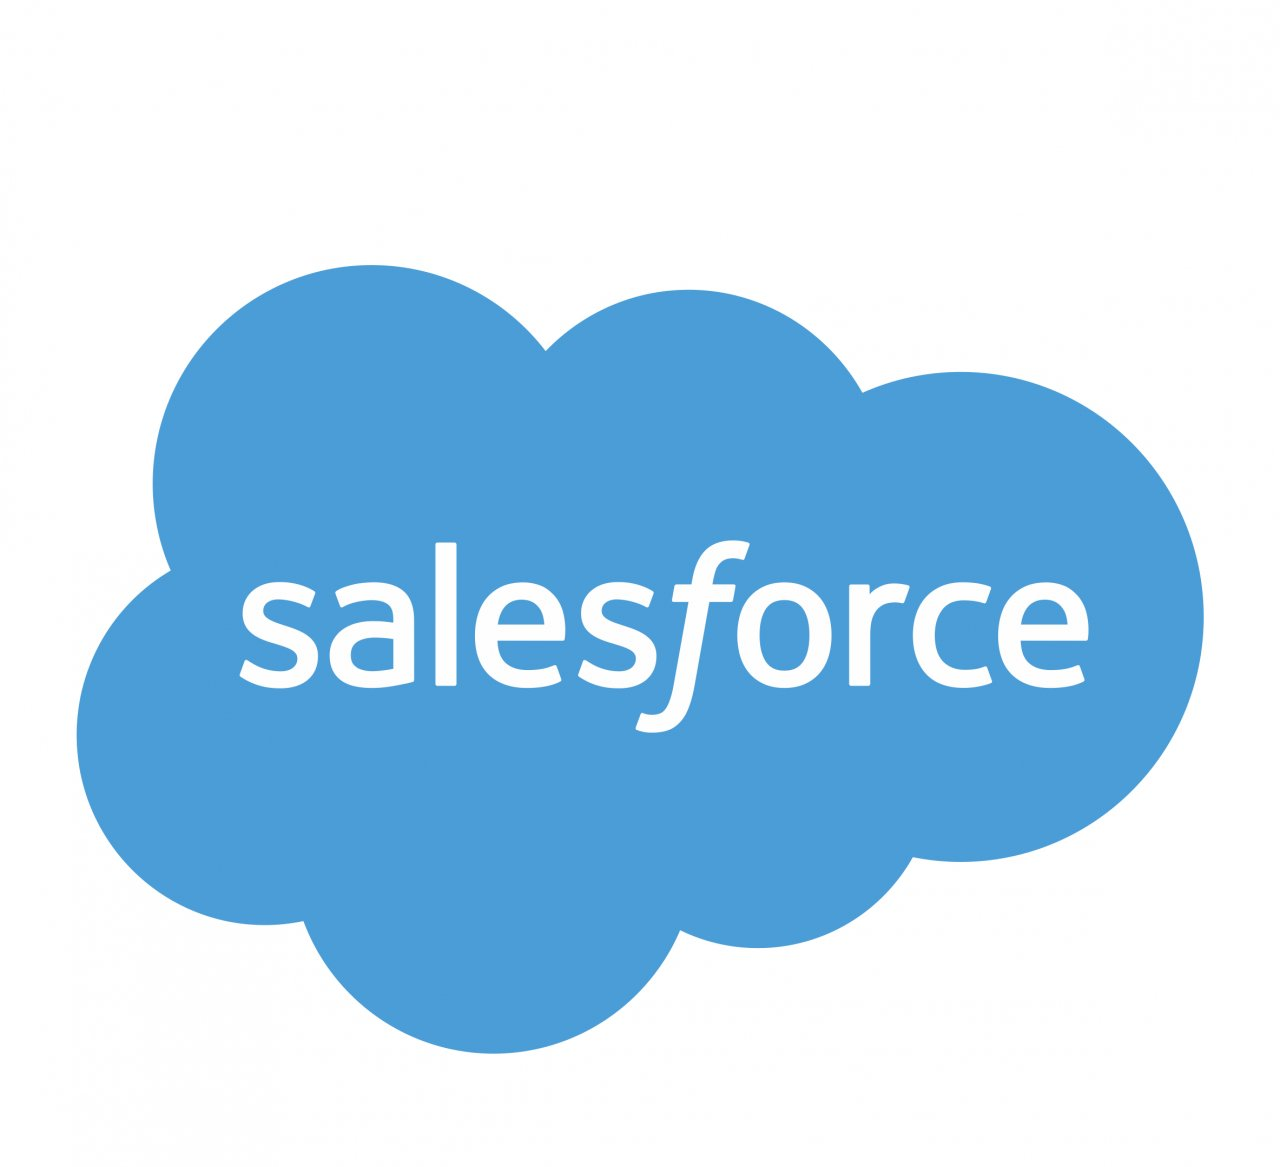 salesforce logo 1000px wide